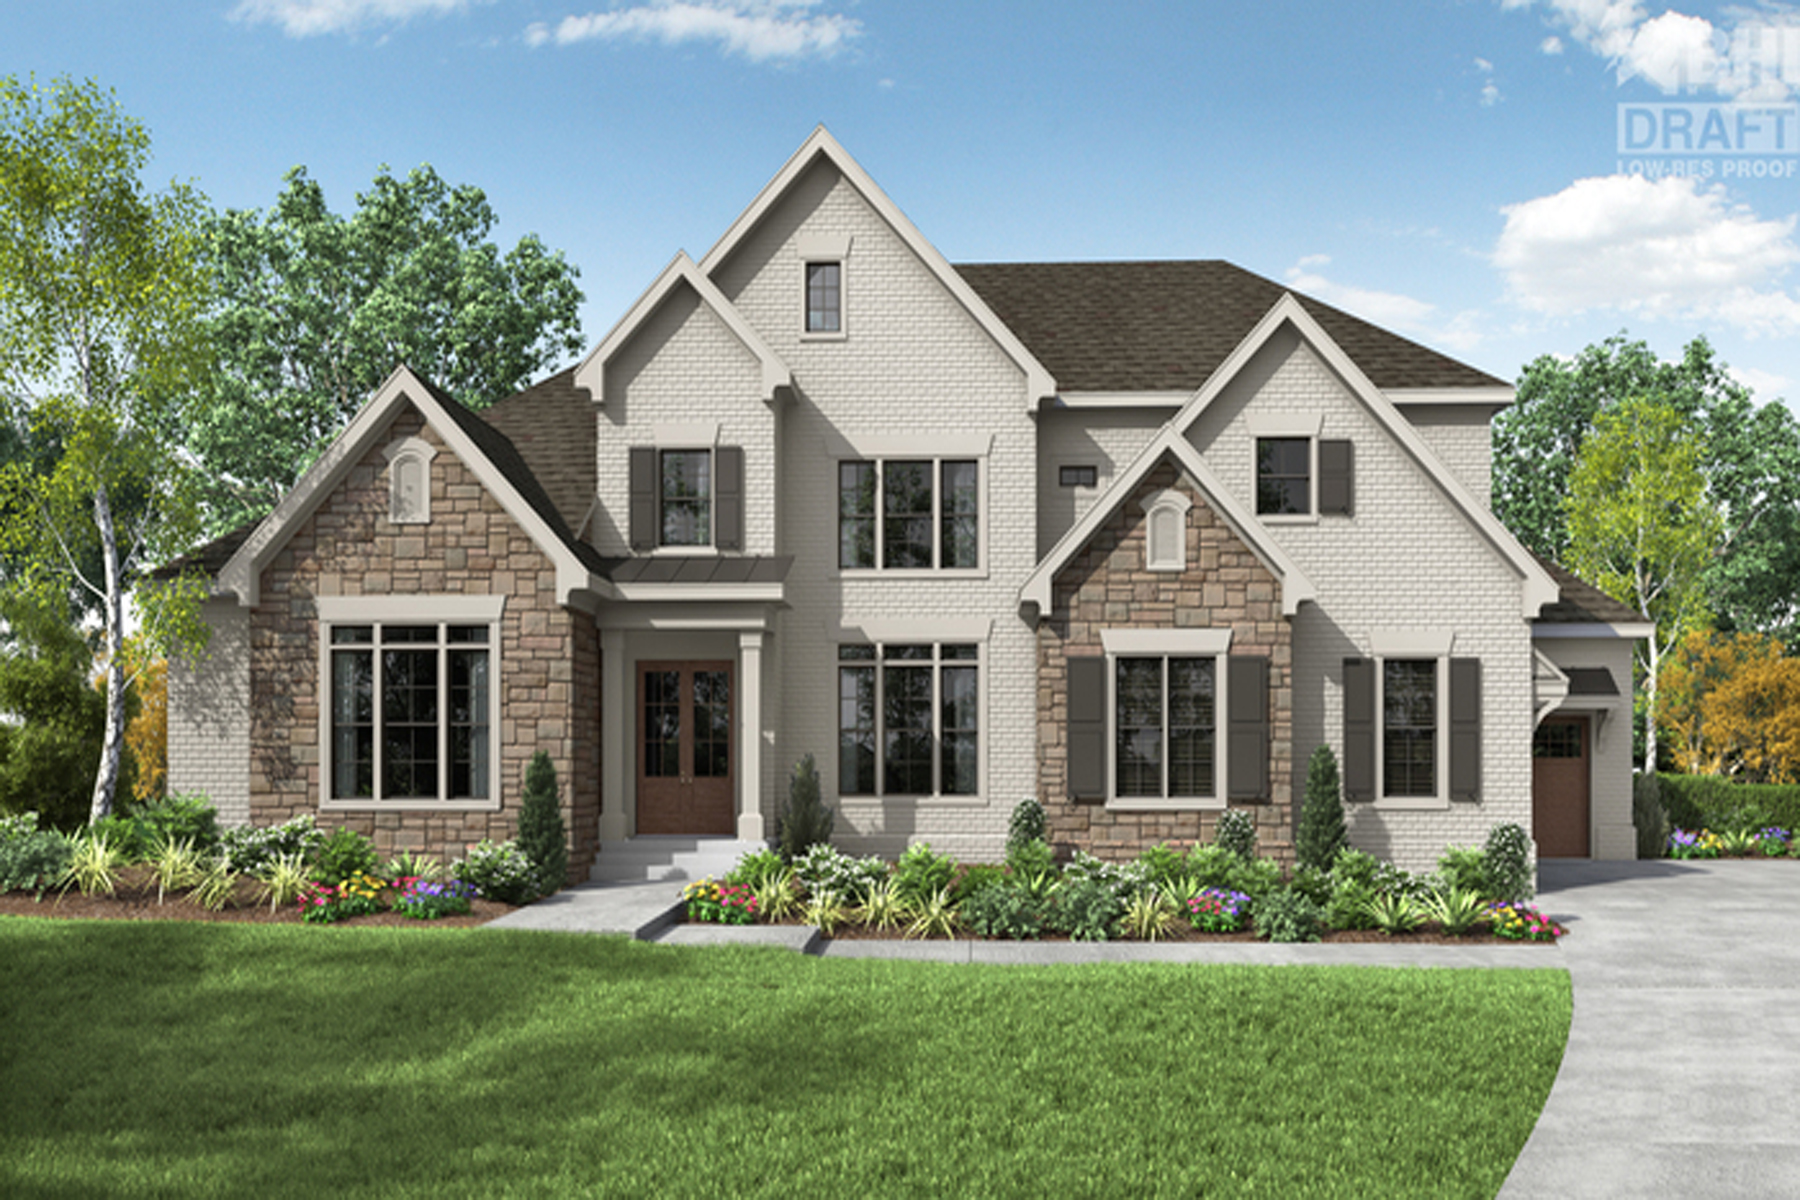 Single Family Homes for Active at European-Inspired Traditional New Construction 465 Heritage Way Sandy Springs, Georgia 30328 United States